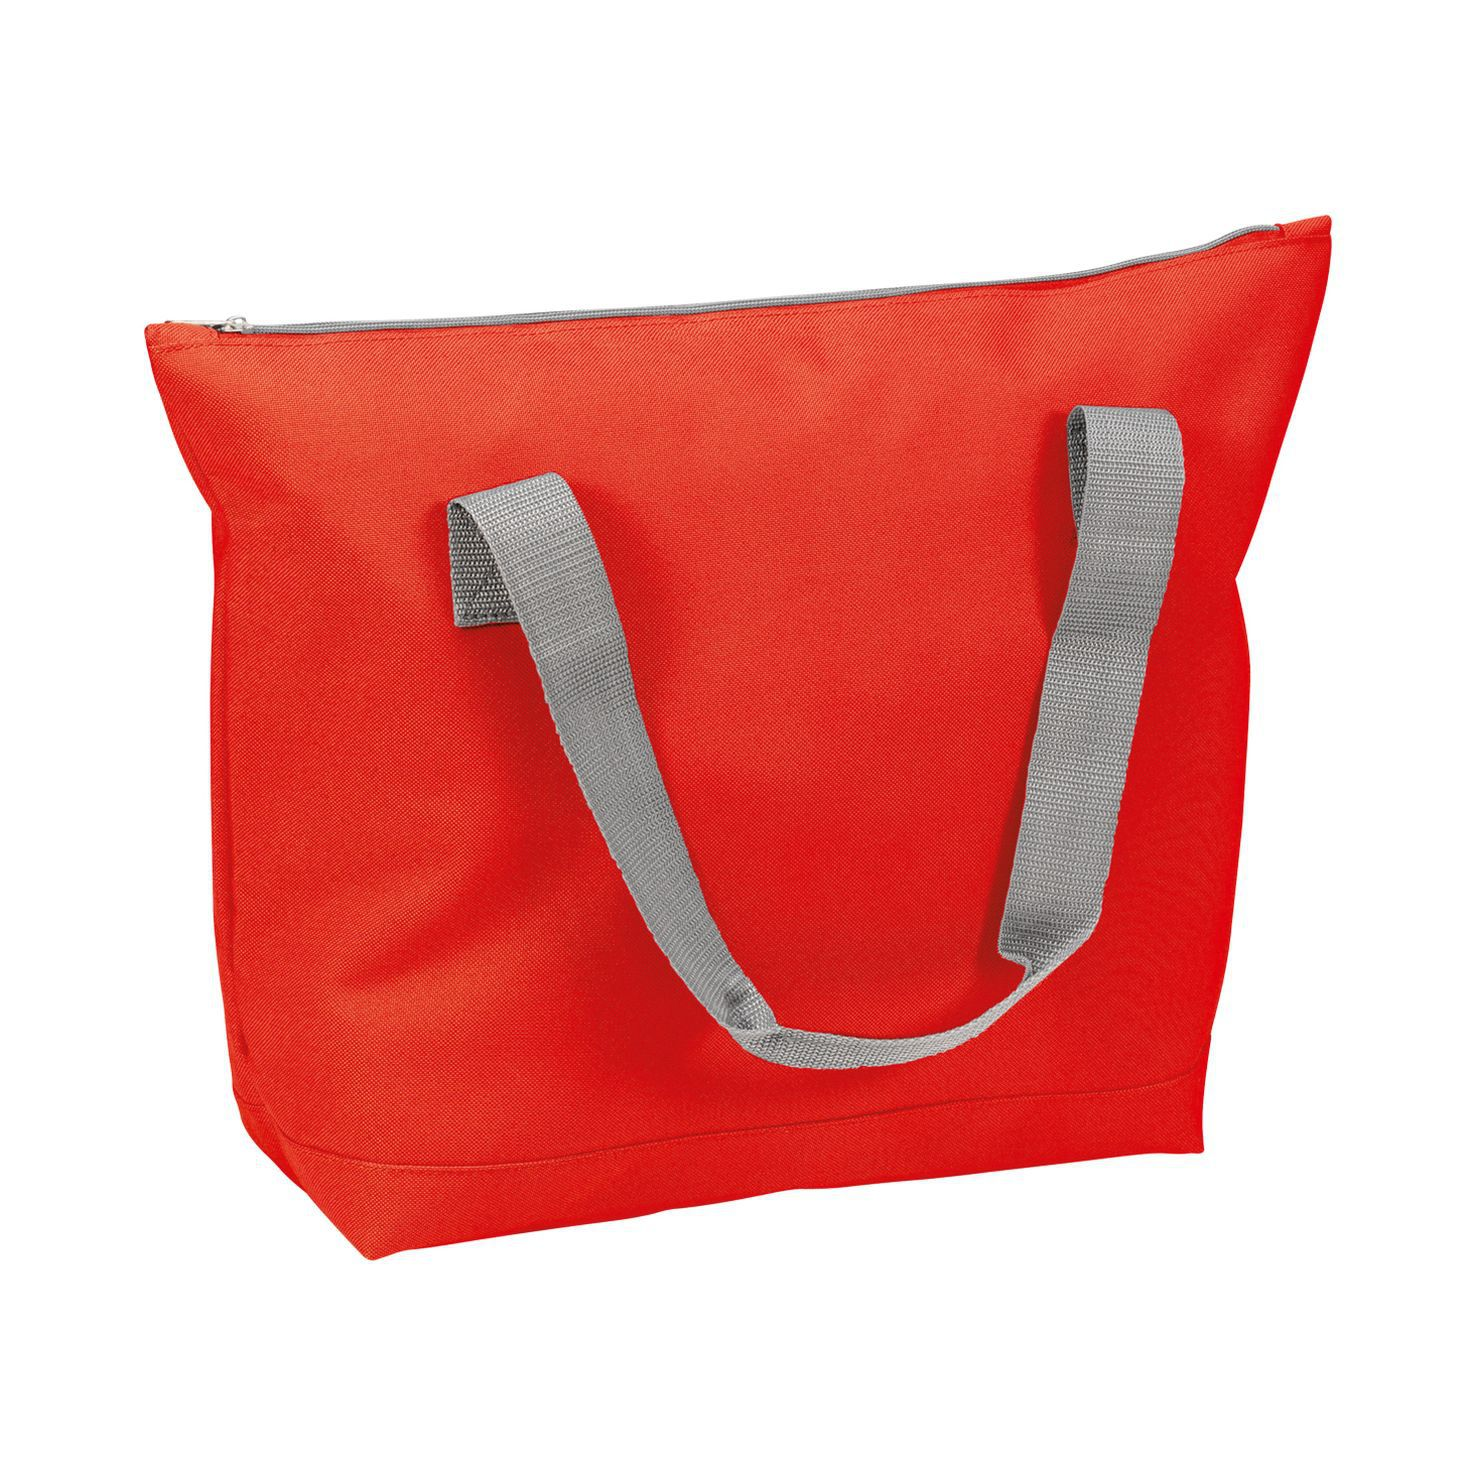 Rode Shopper met rits | Polyester